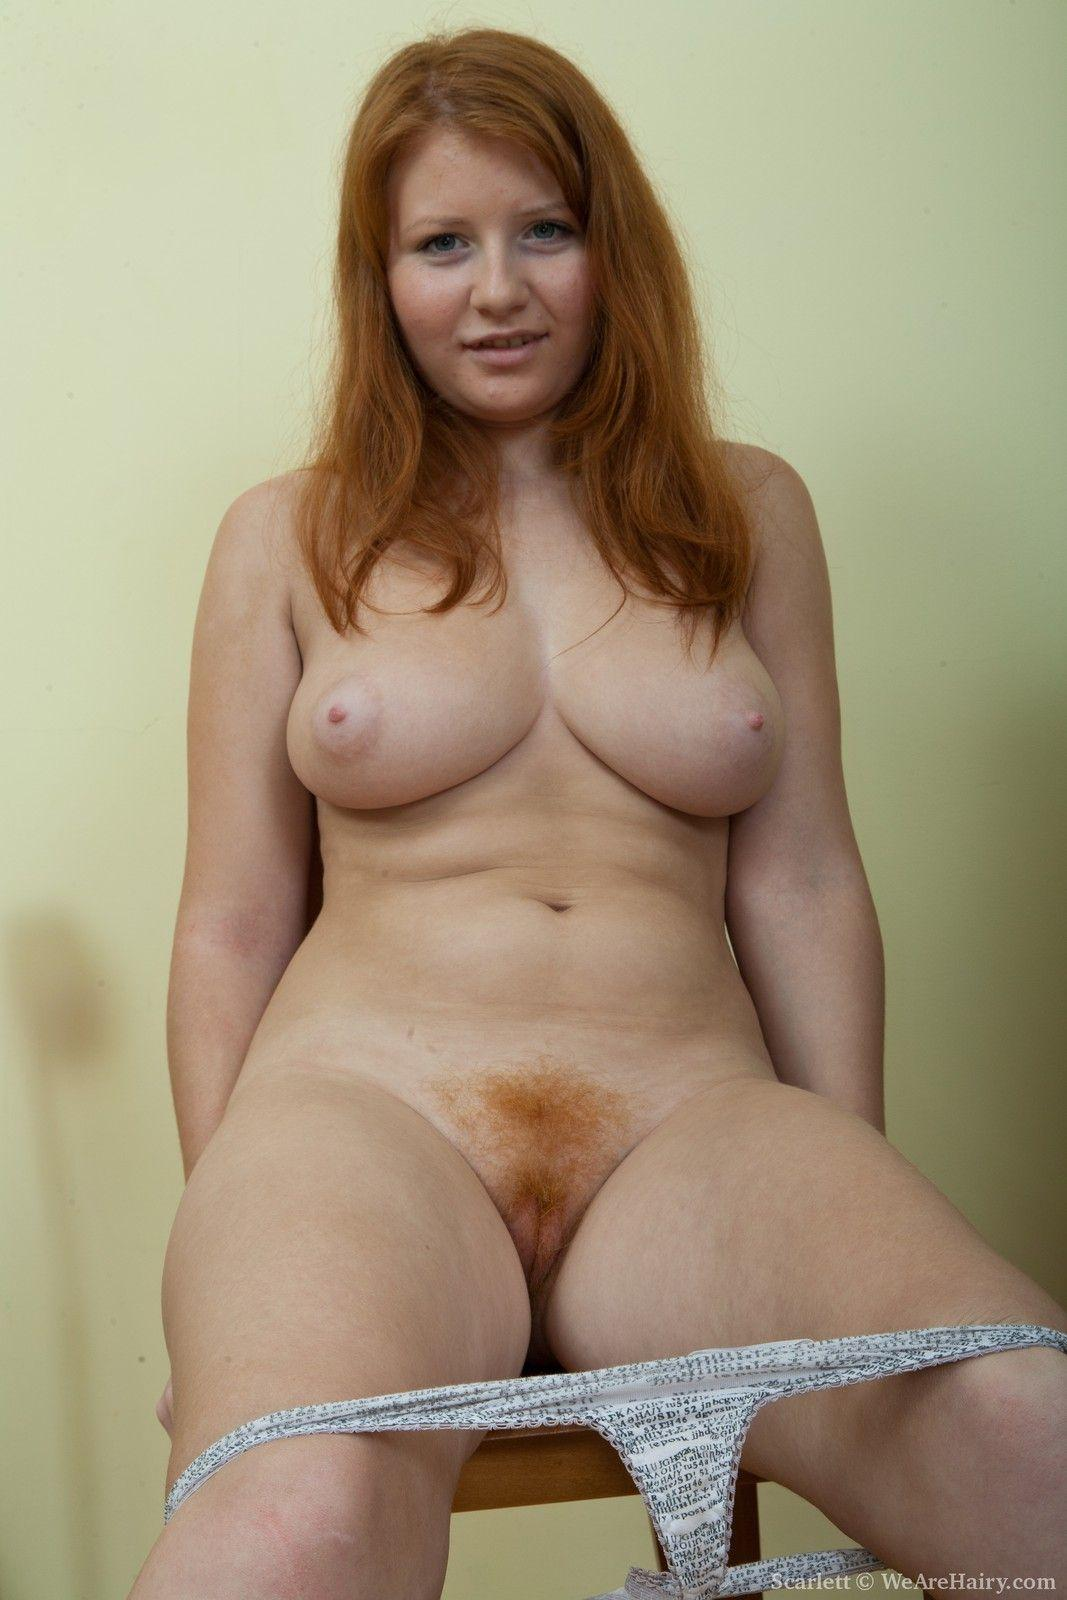 Apologise, but, hairy red head pussy movies